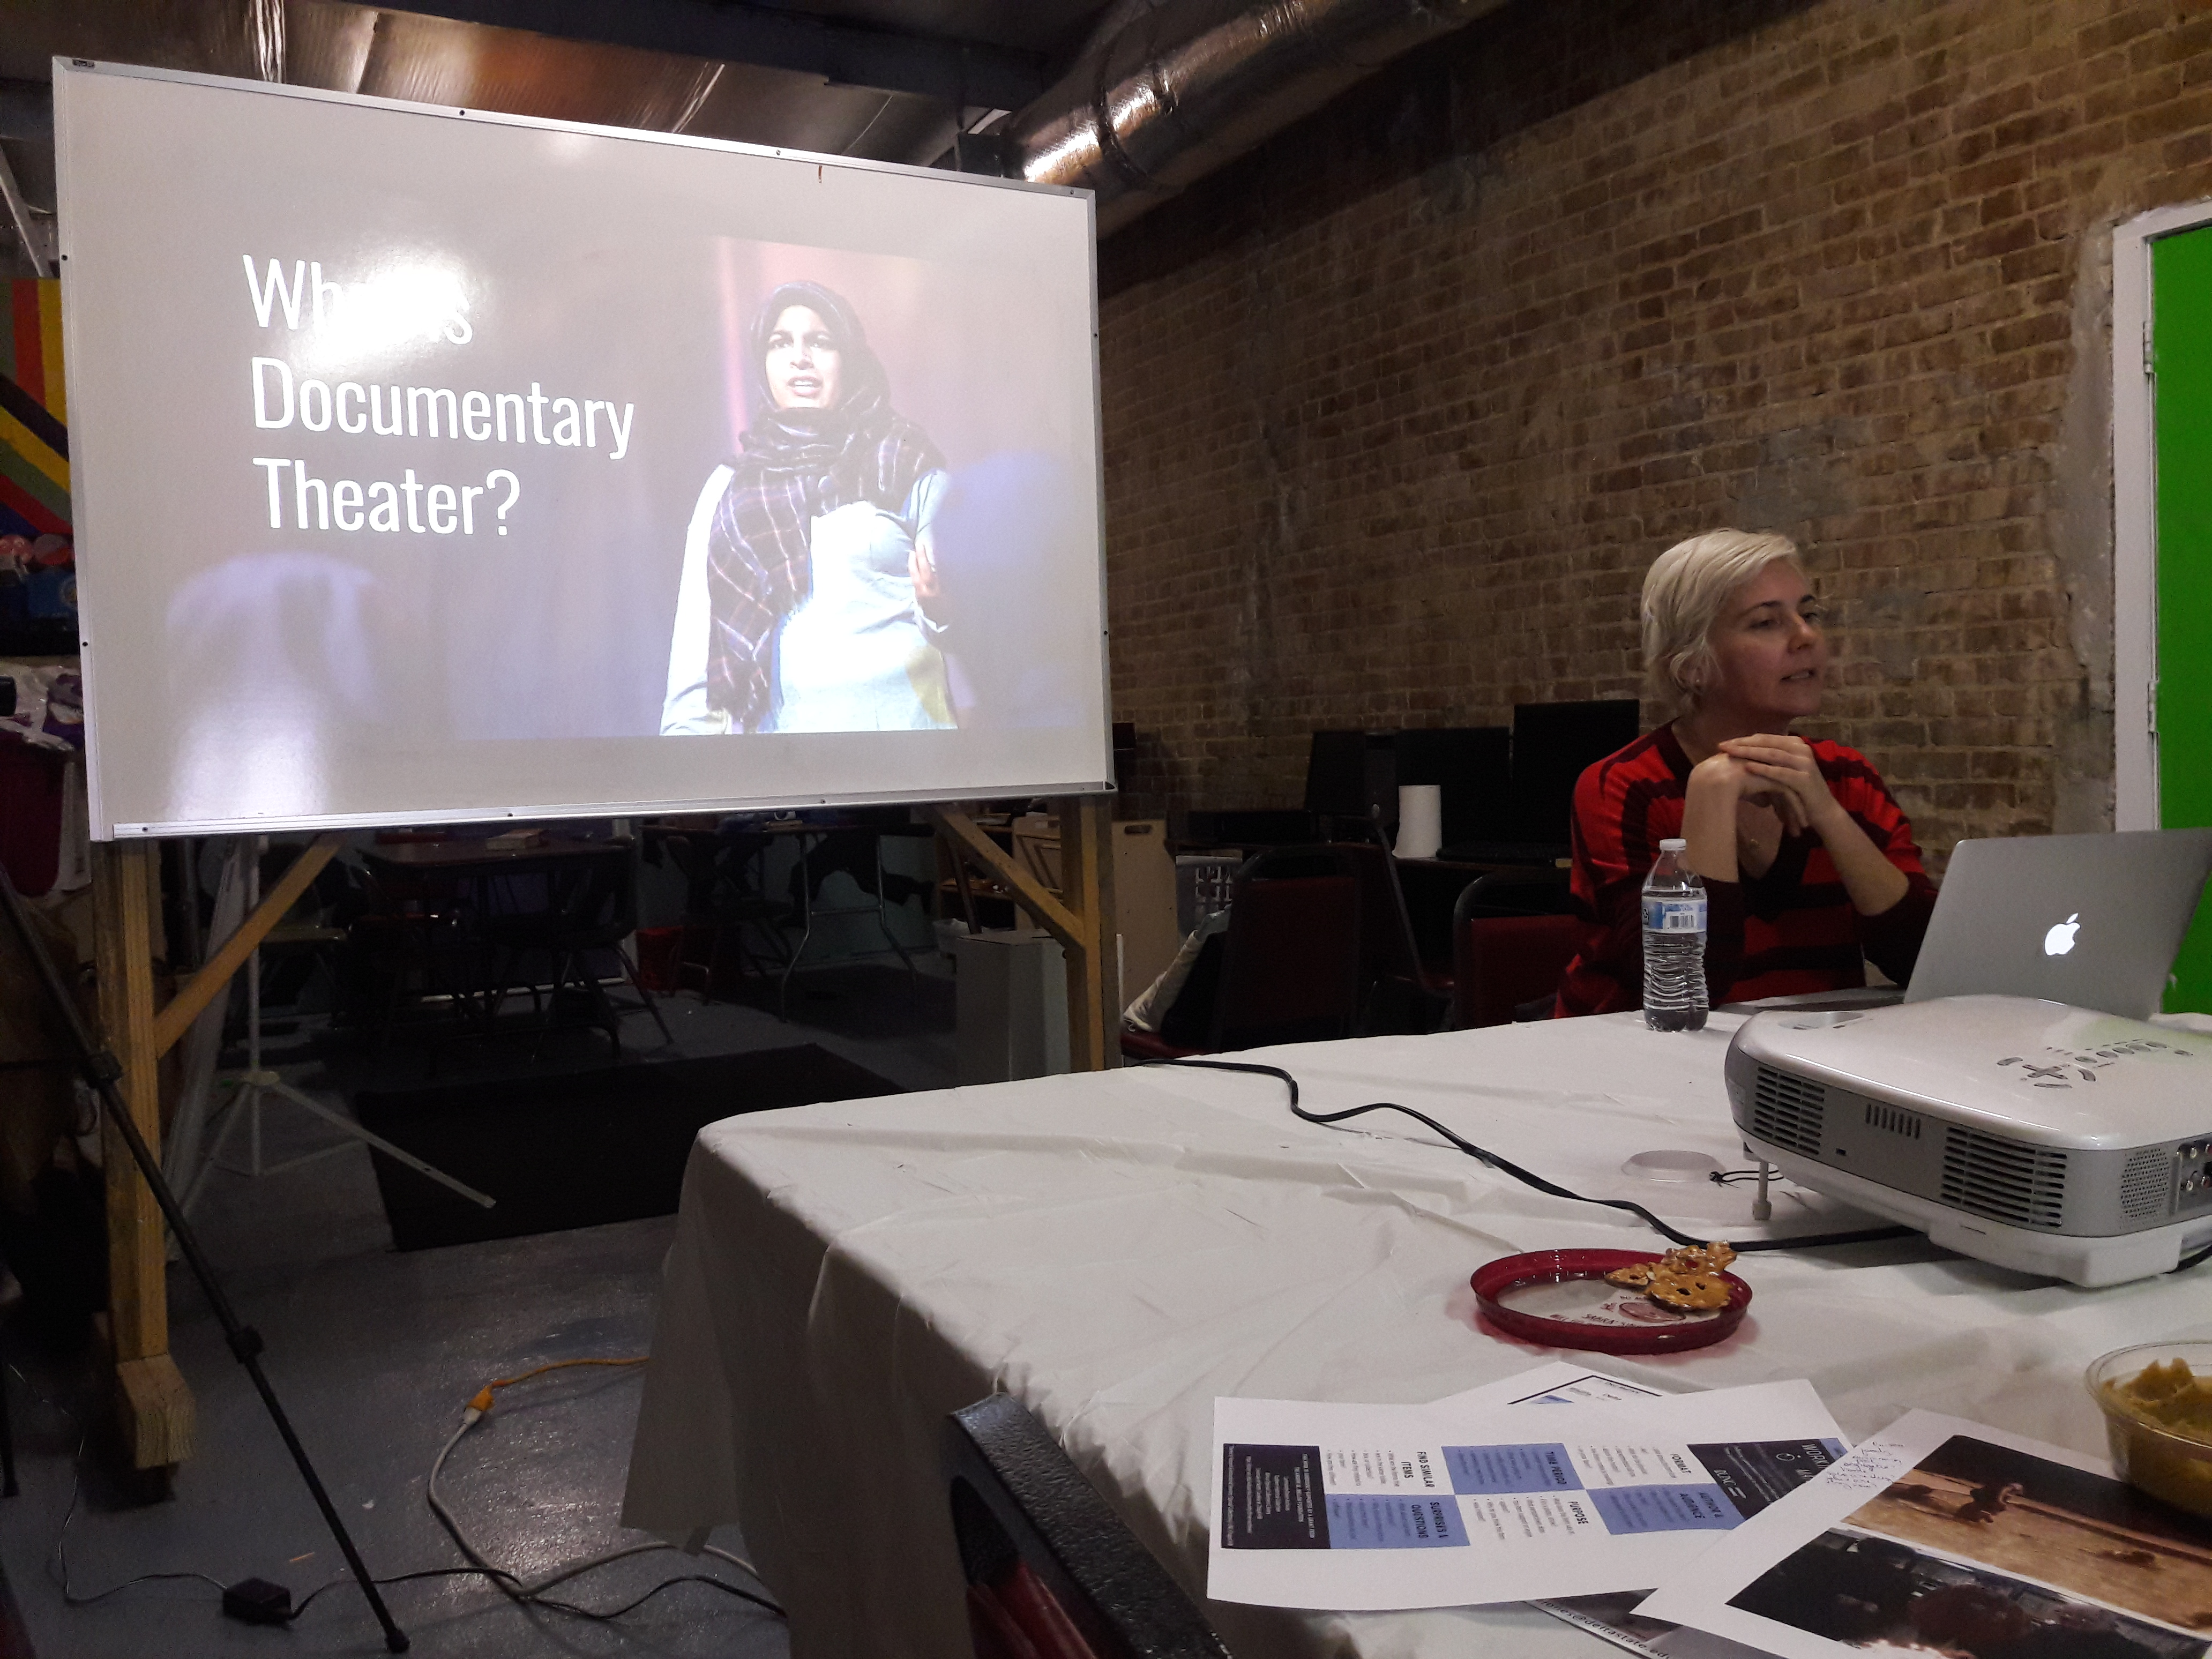 """White woman-presenting person at a table in front of a computer, presenting in front of a screen with a projection. The projected slide features a person in a head scarf and reads, """"What is Documentary Theater?"""""""